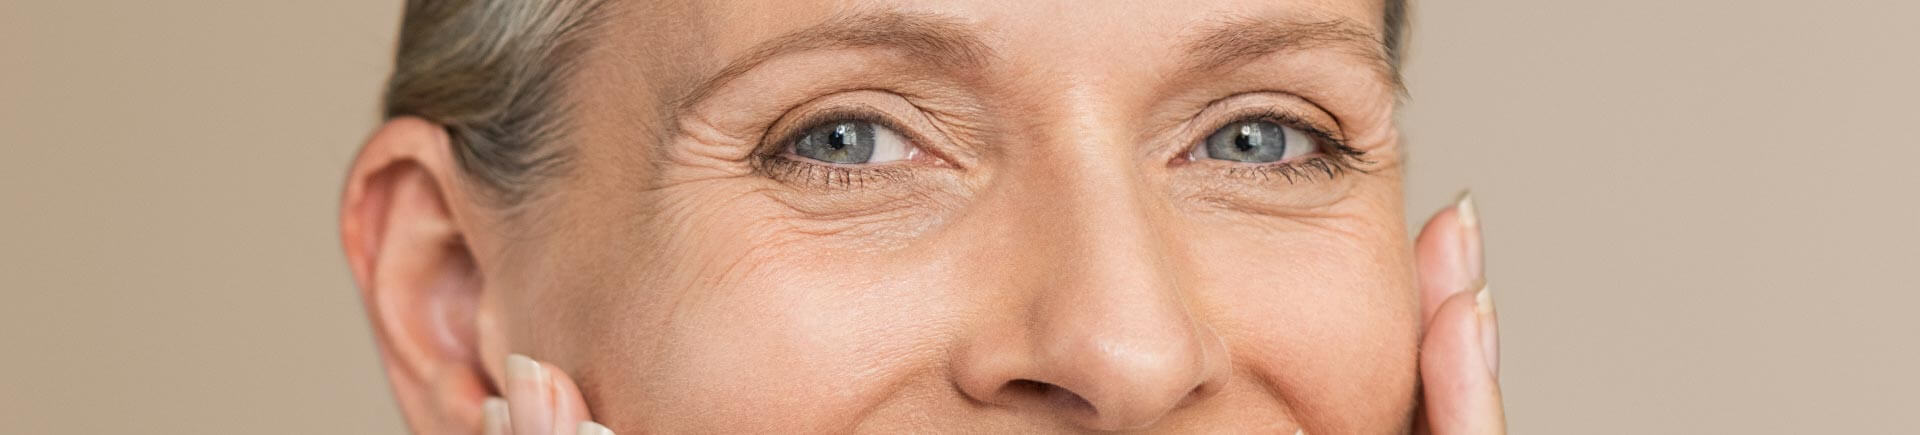 Eyes of a middle-aged woman